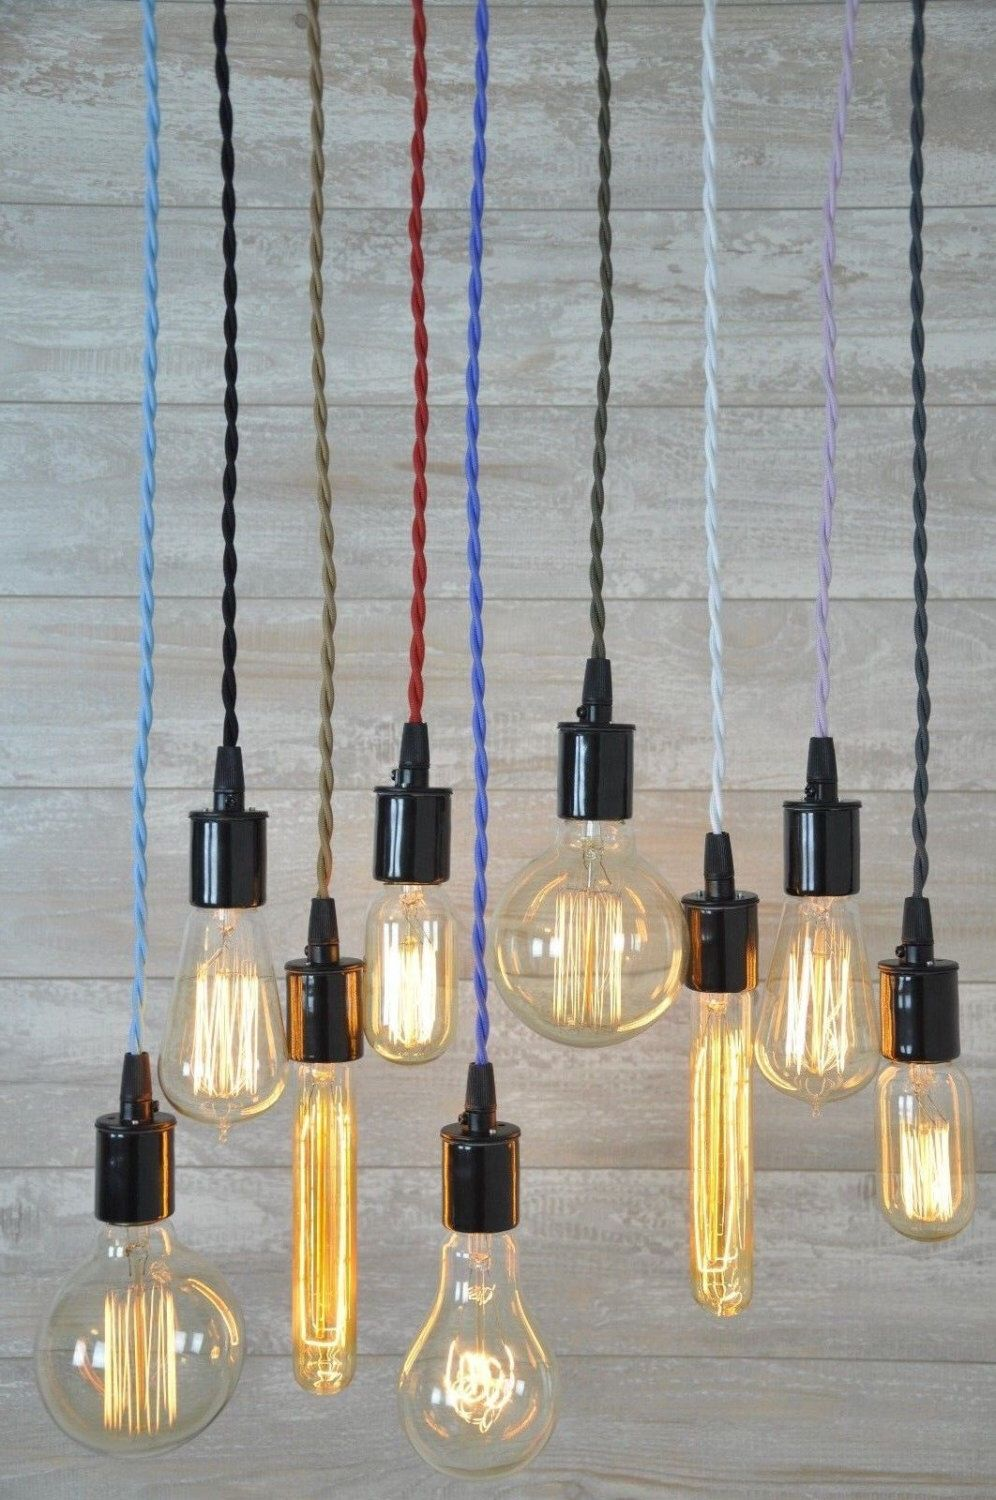 Cord set with bulb socket 8 foot many colors ceiling pendant light cord set with bulb socket 8 foot many colors ceiling pendant light lamp cord by wiresnjars mozeypictures Choice Image